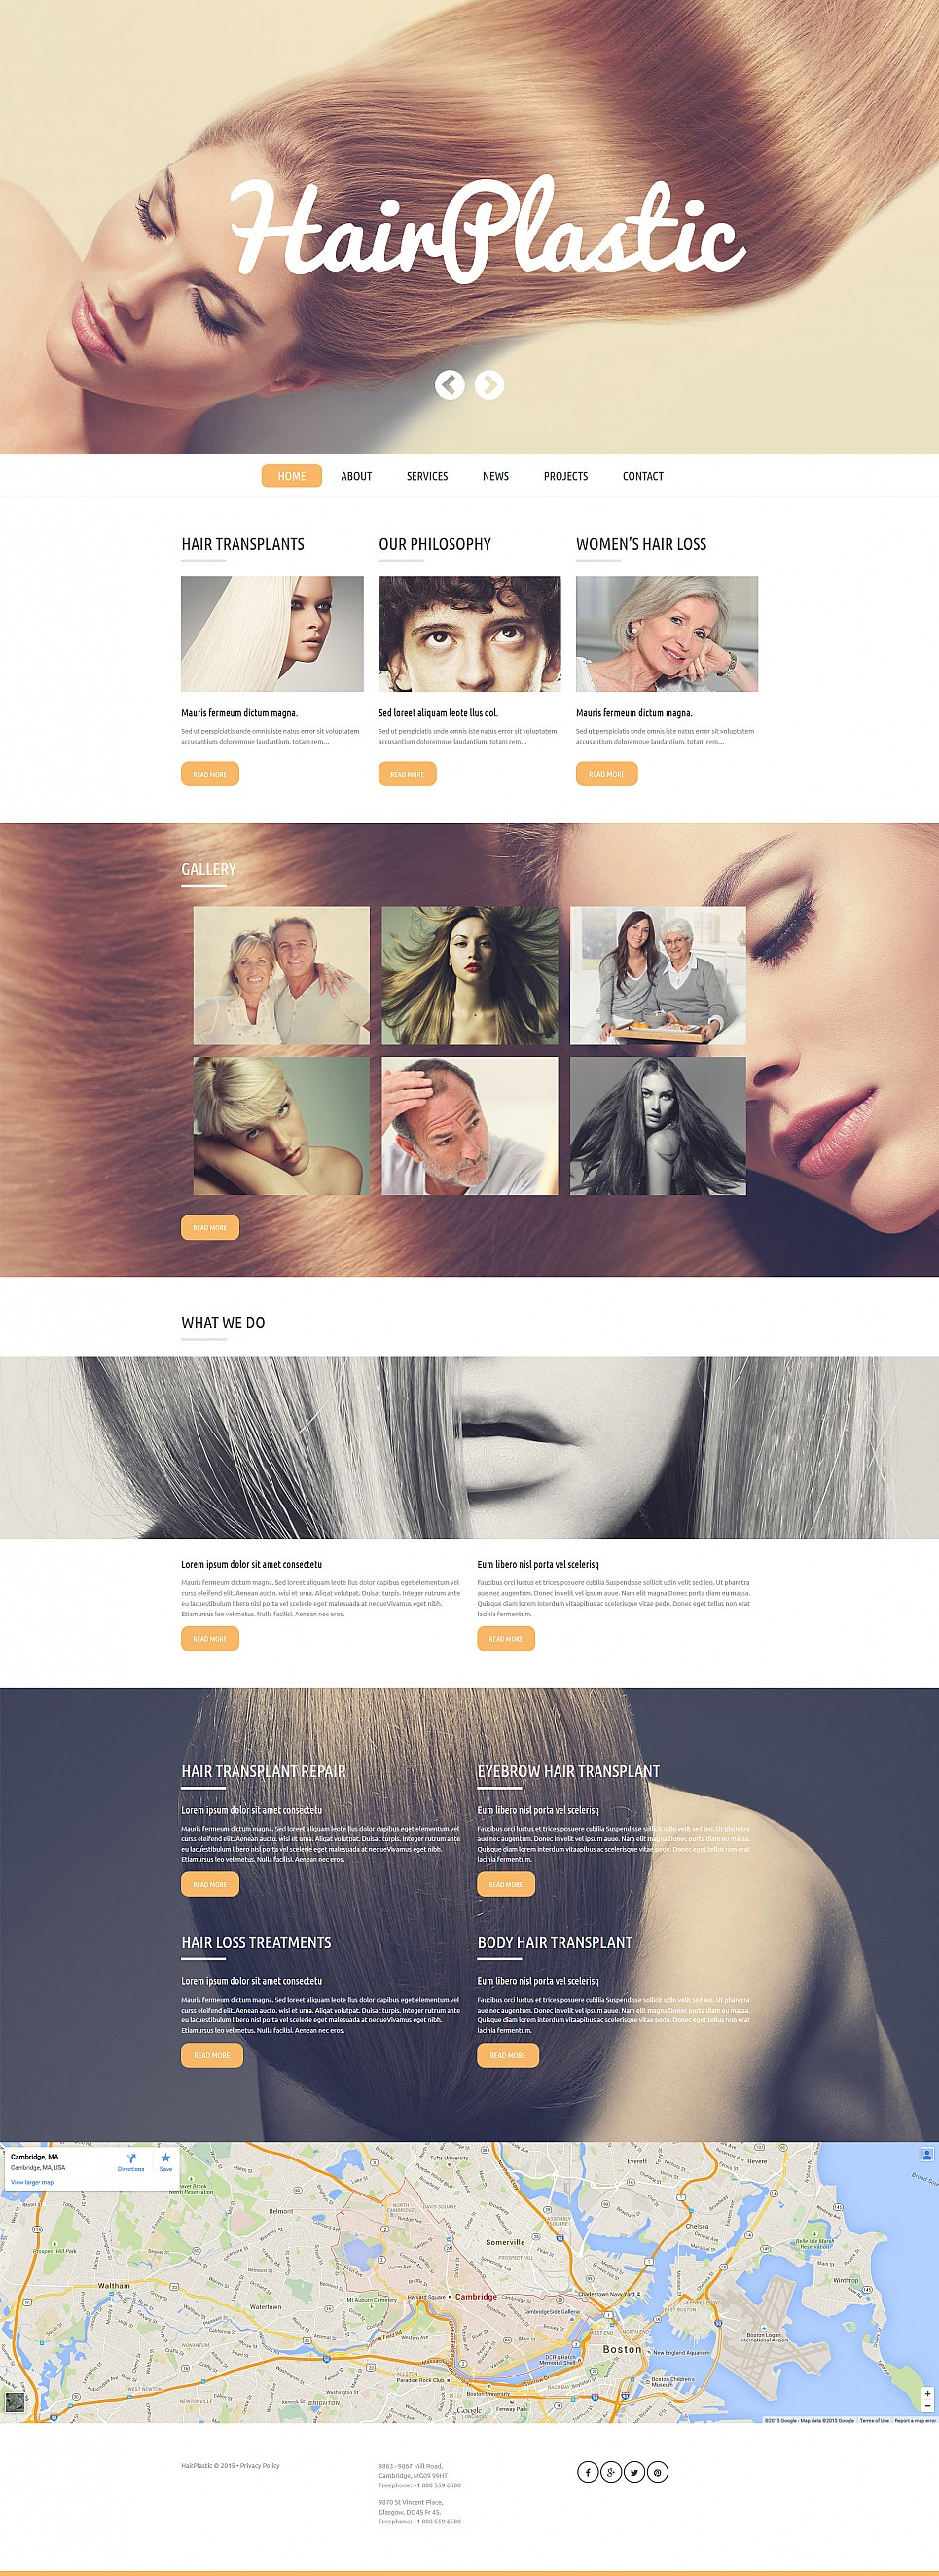 Web Design for Hair Restoration Clinic - image